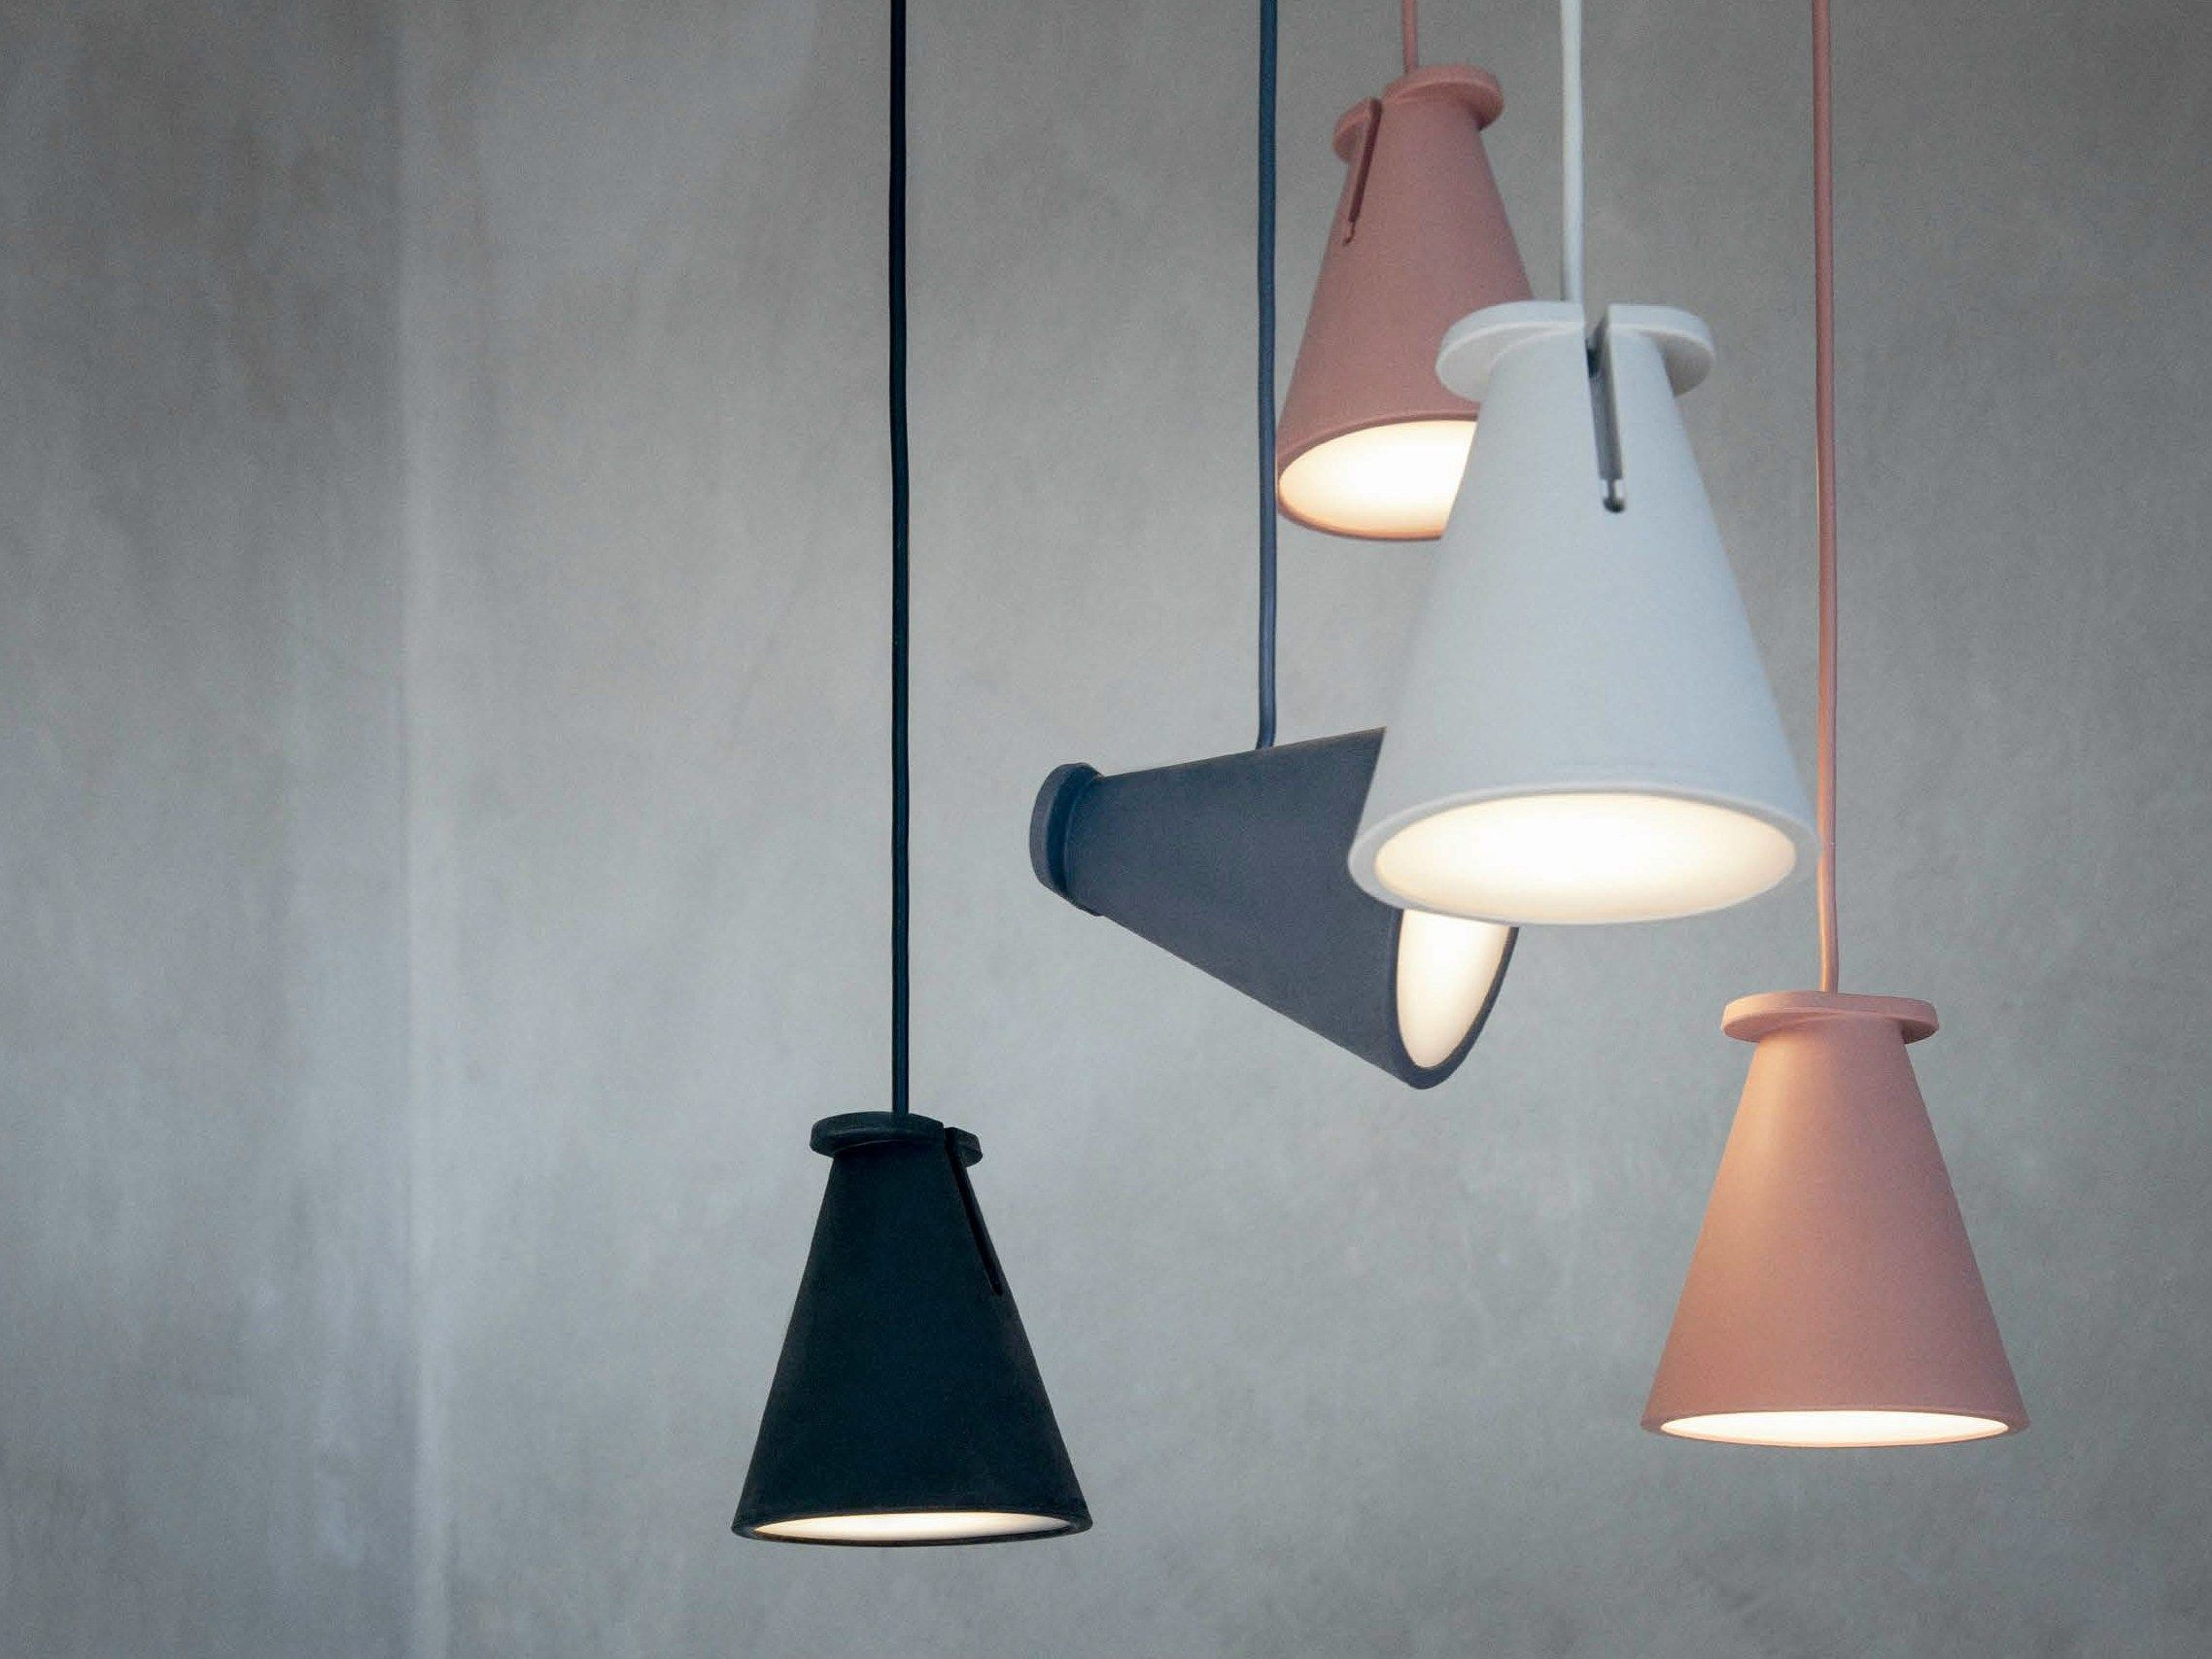 download the catalogue and request prices of bollard by menu download the catalogue and request prices of bollard by menu silicone pendant lamp floor